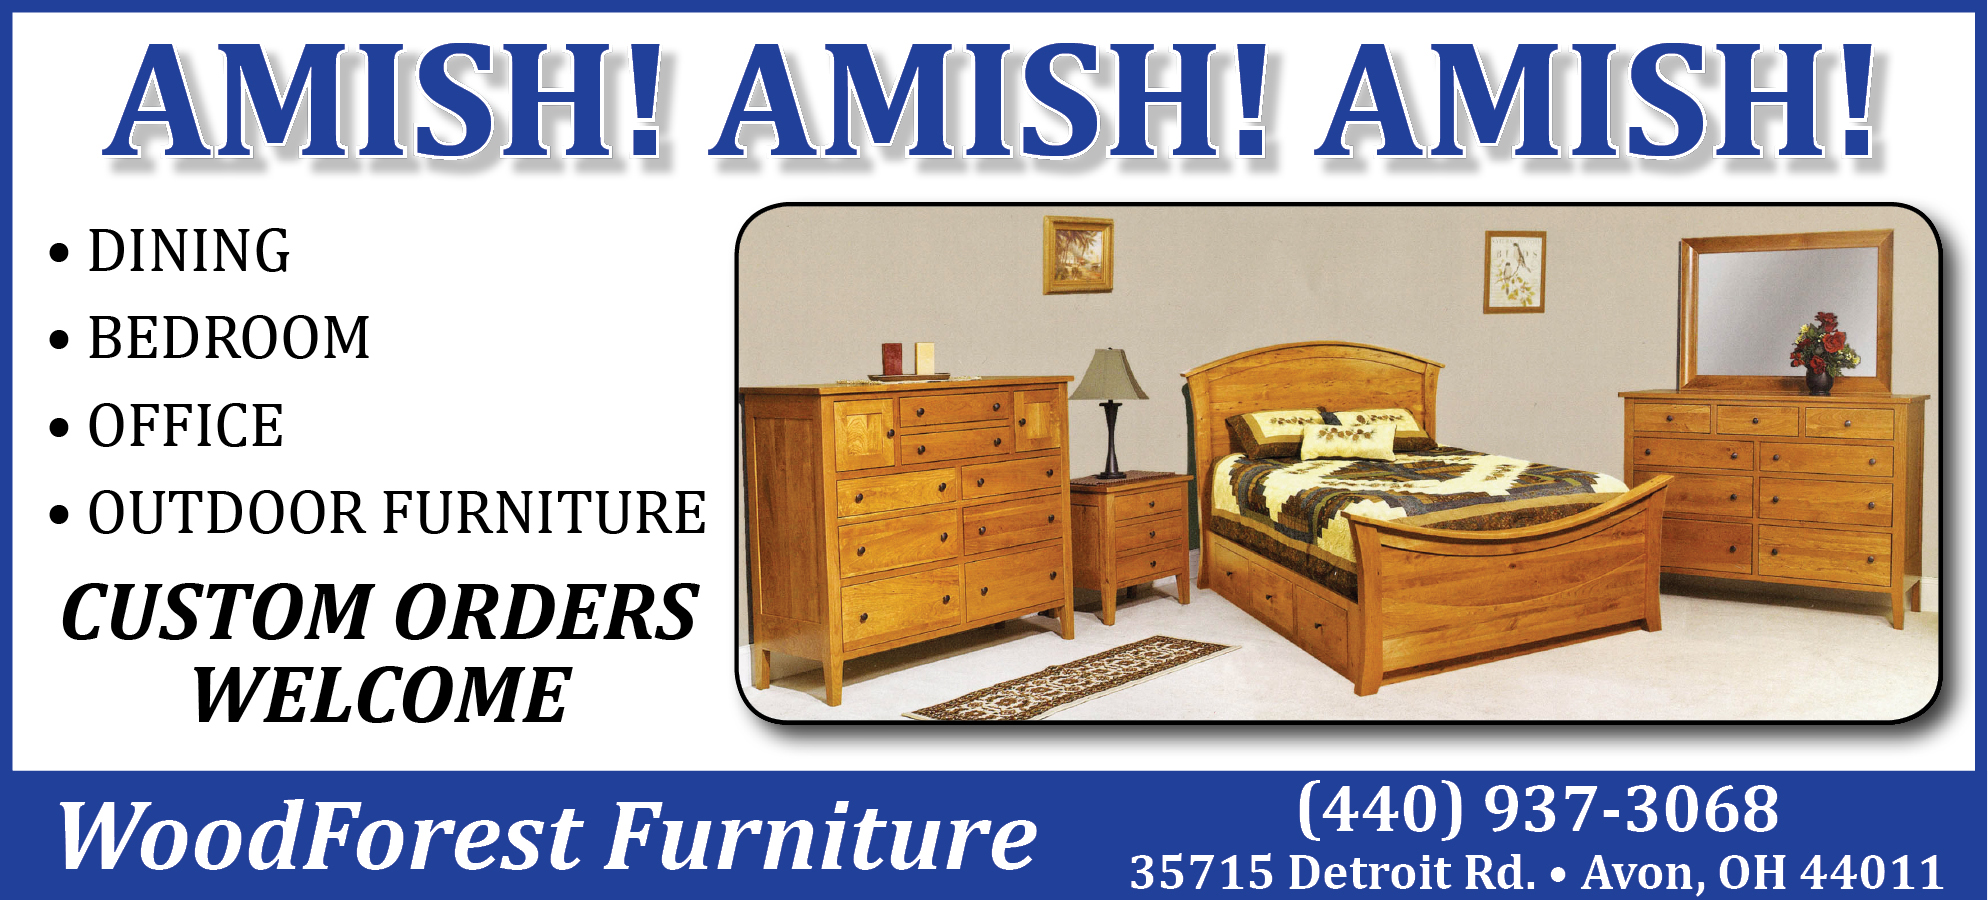 21816_WoodForest Furniture Ad